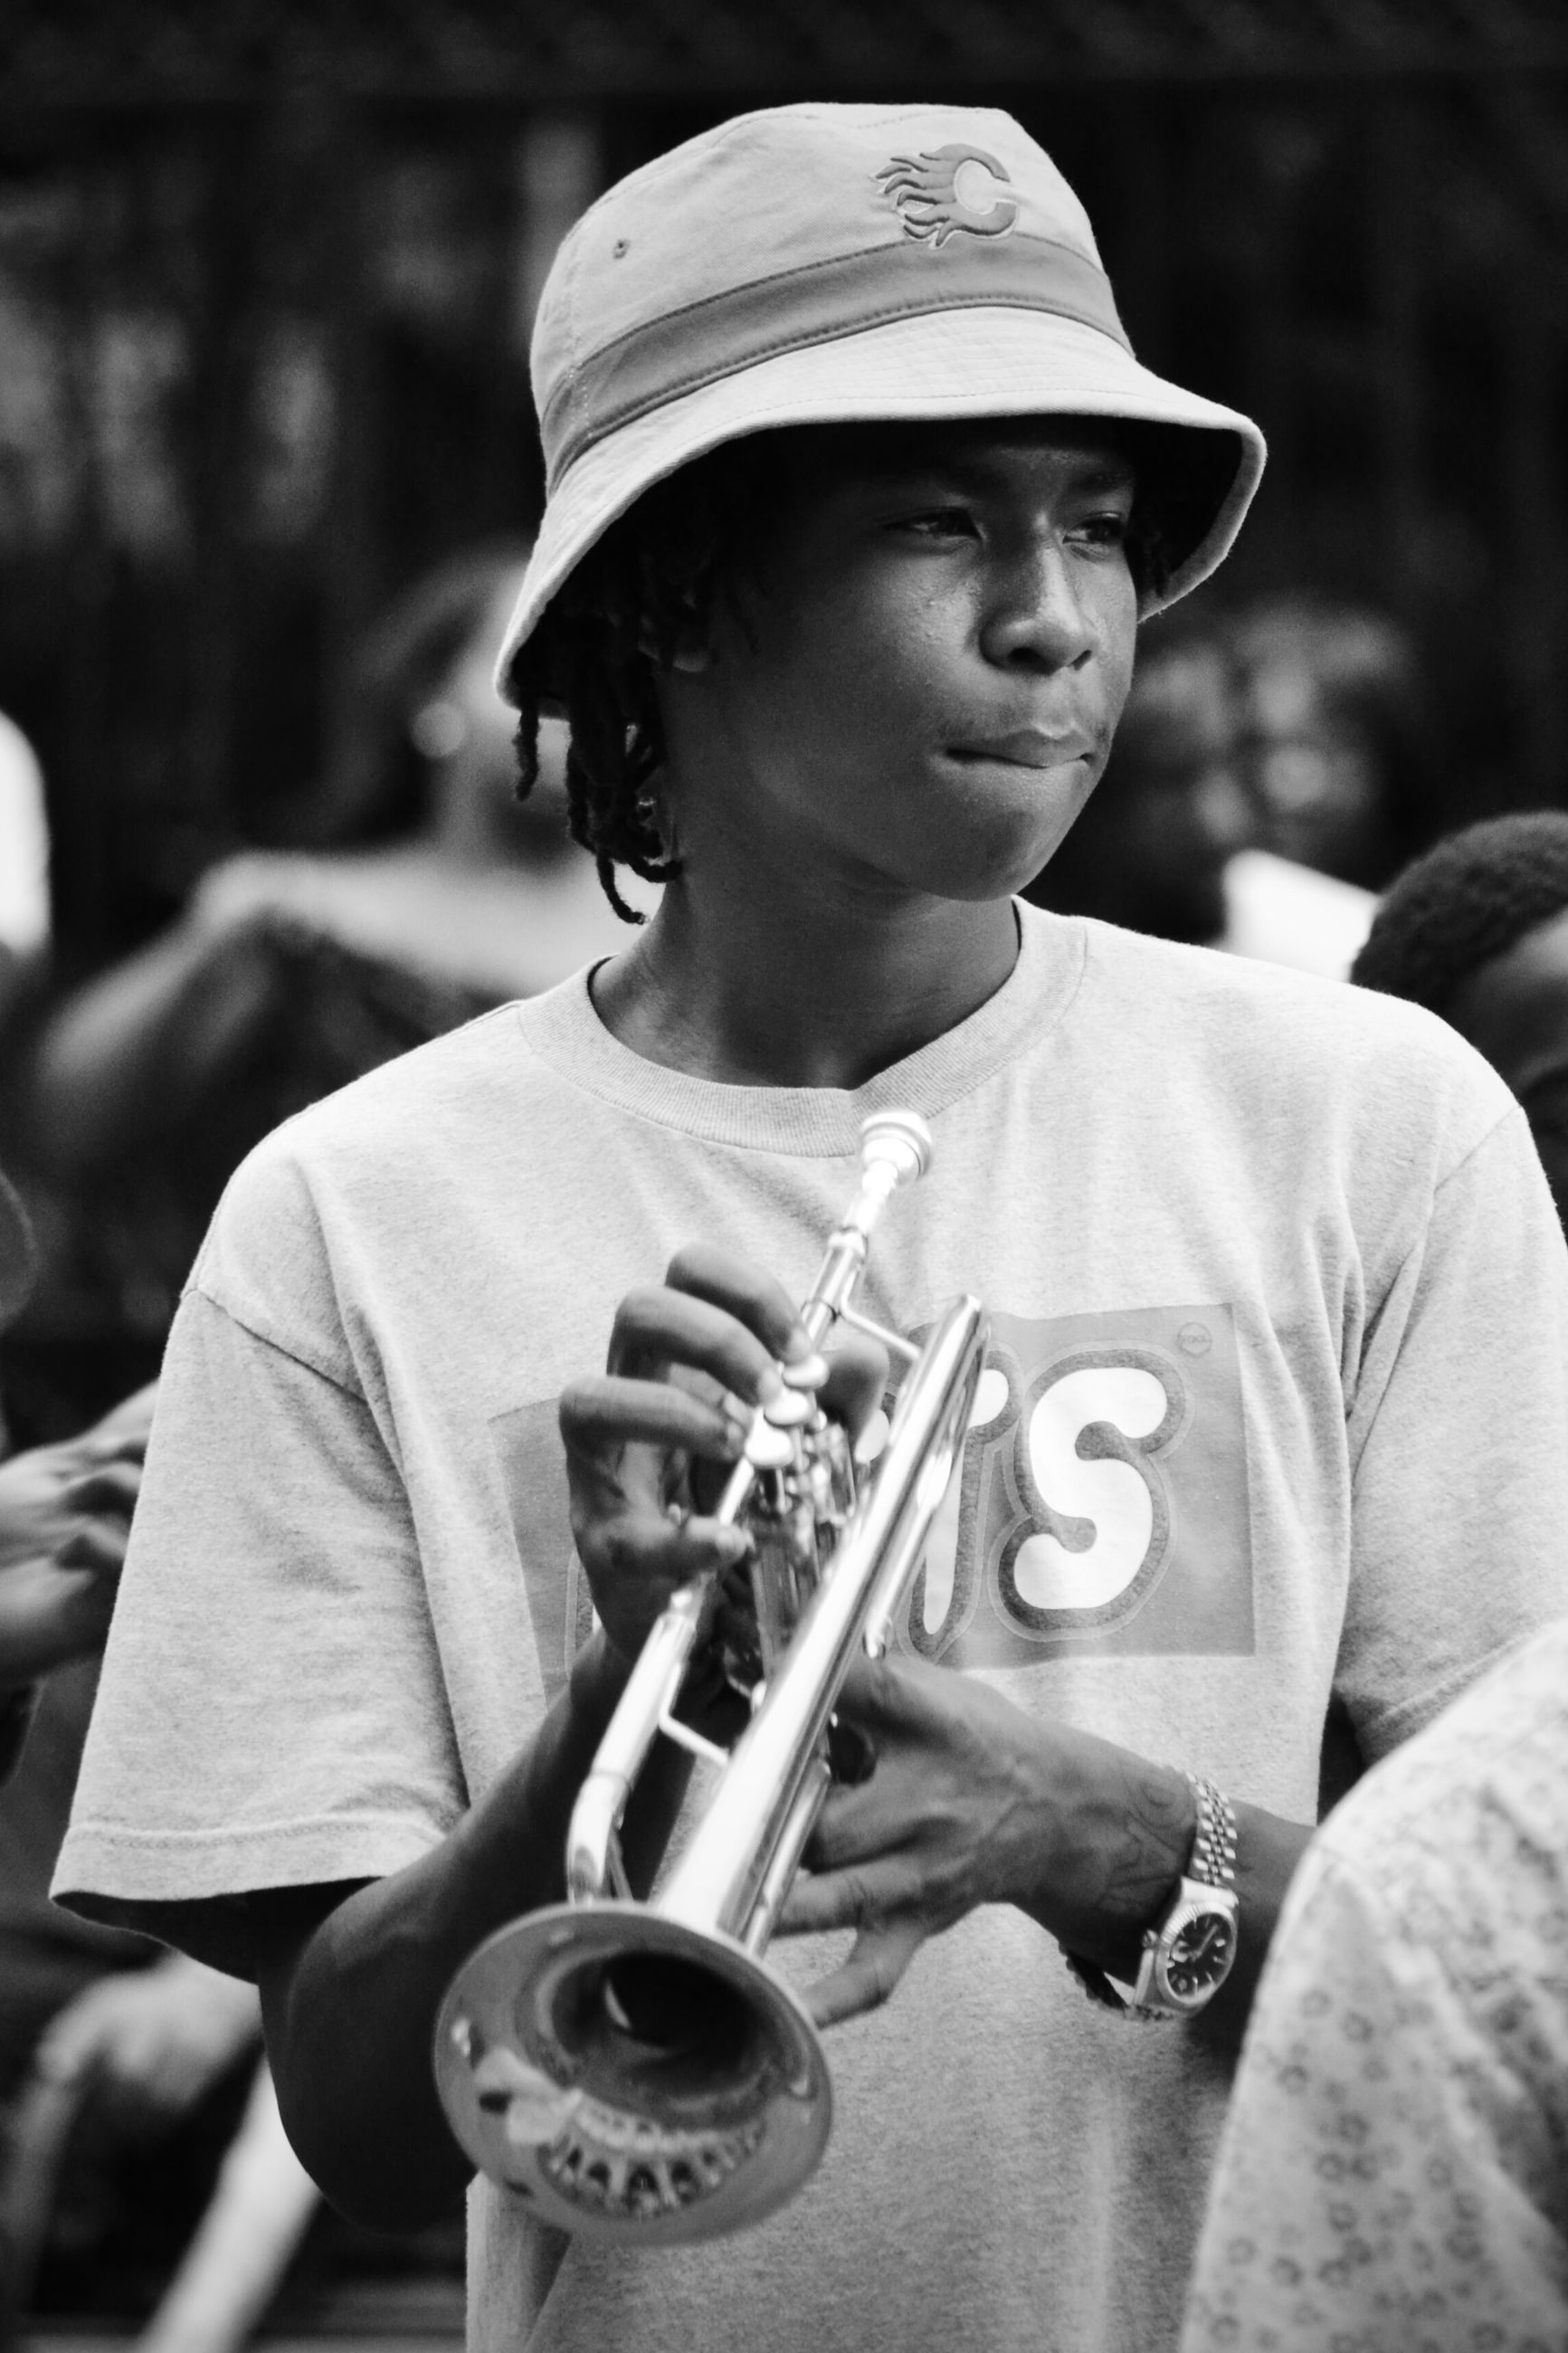 Blackandwhite Streetphoto_bw Streetphotography Neworleans Love capturing moments of life....